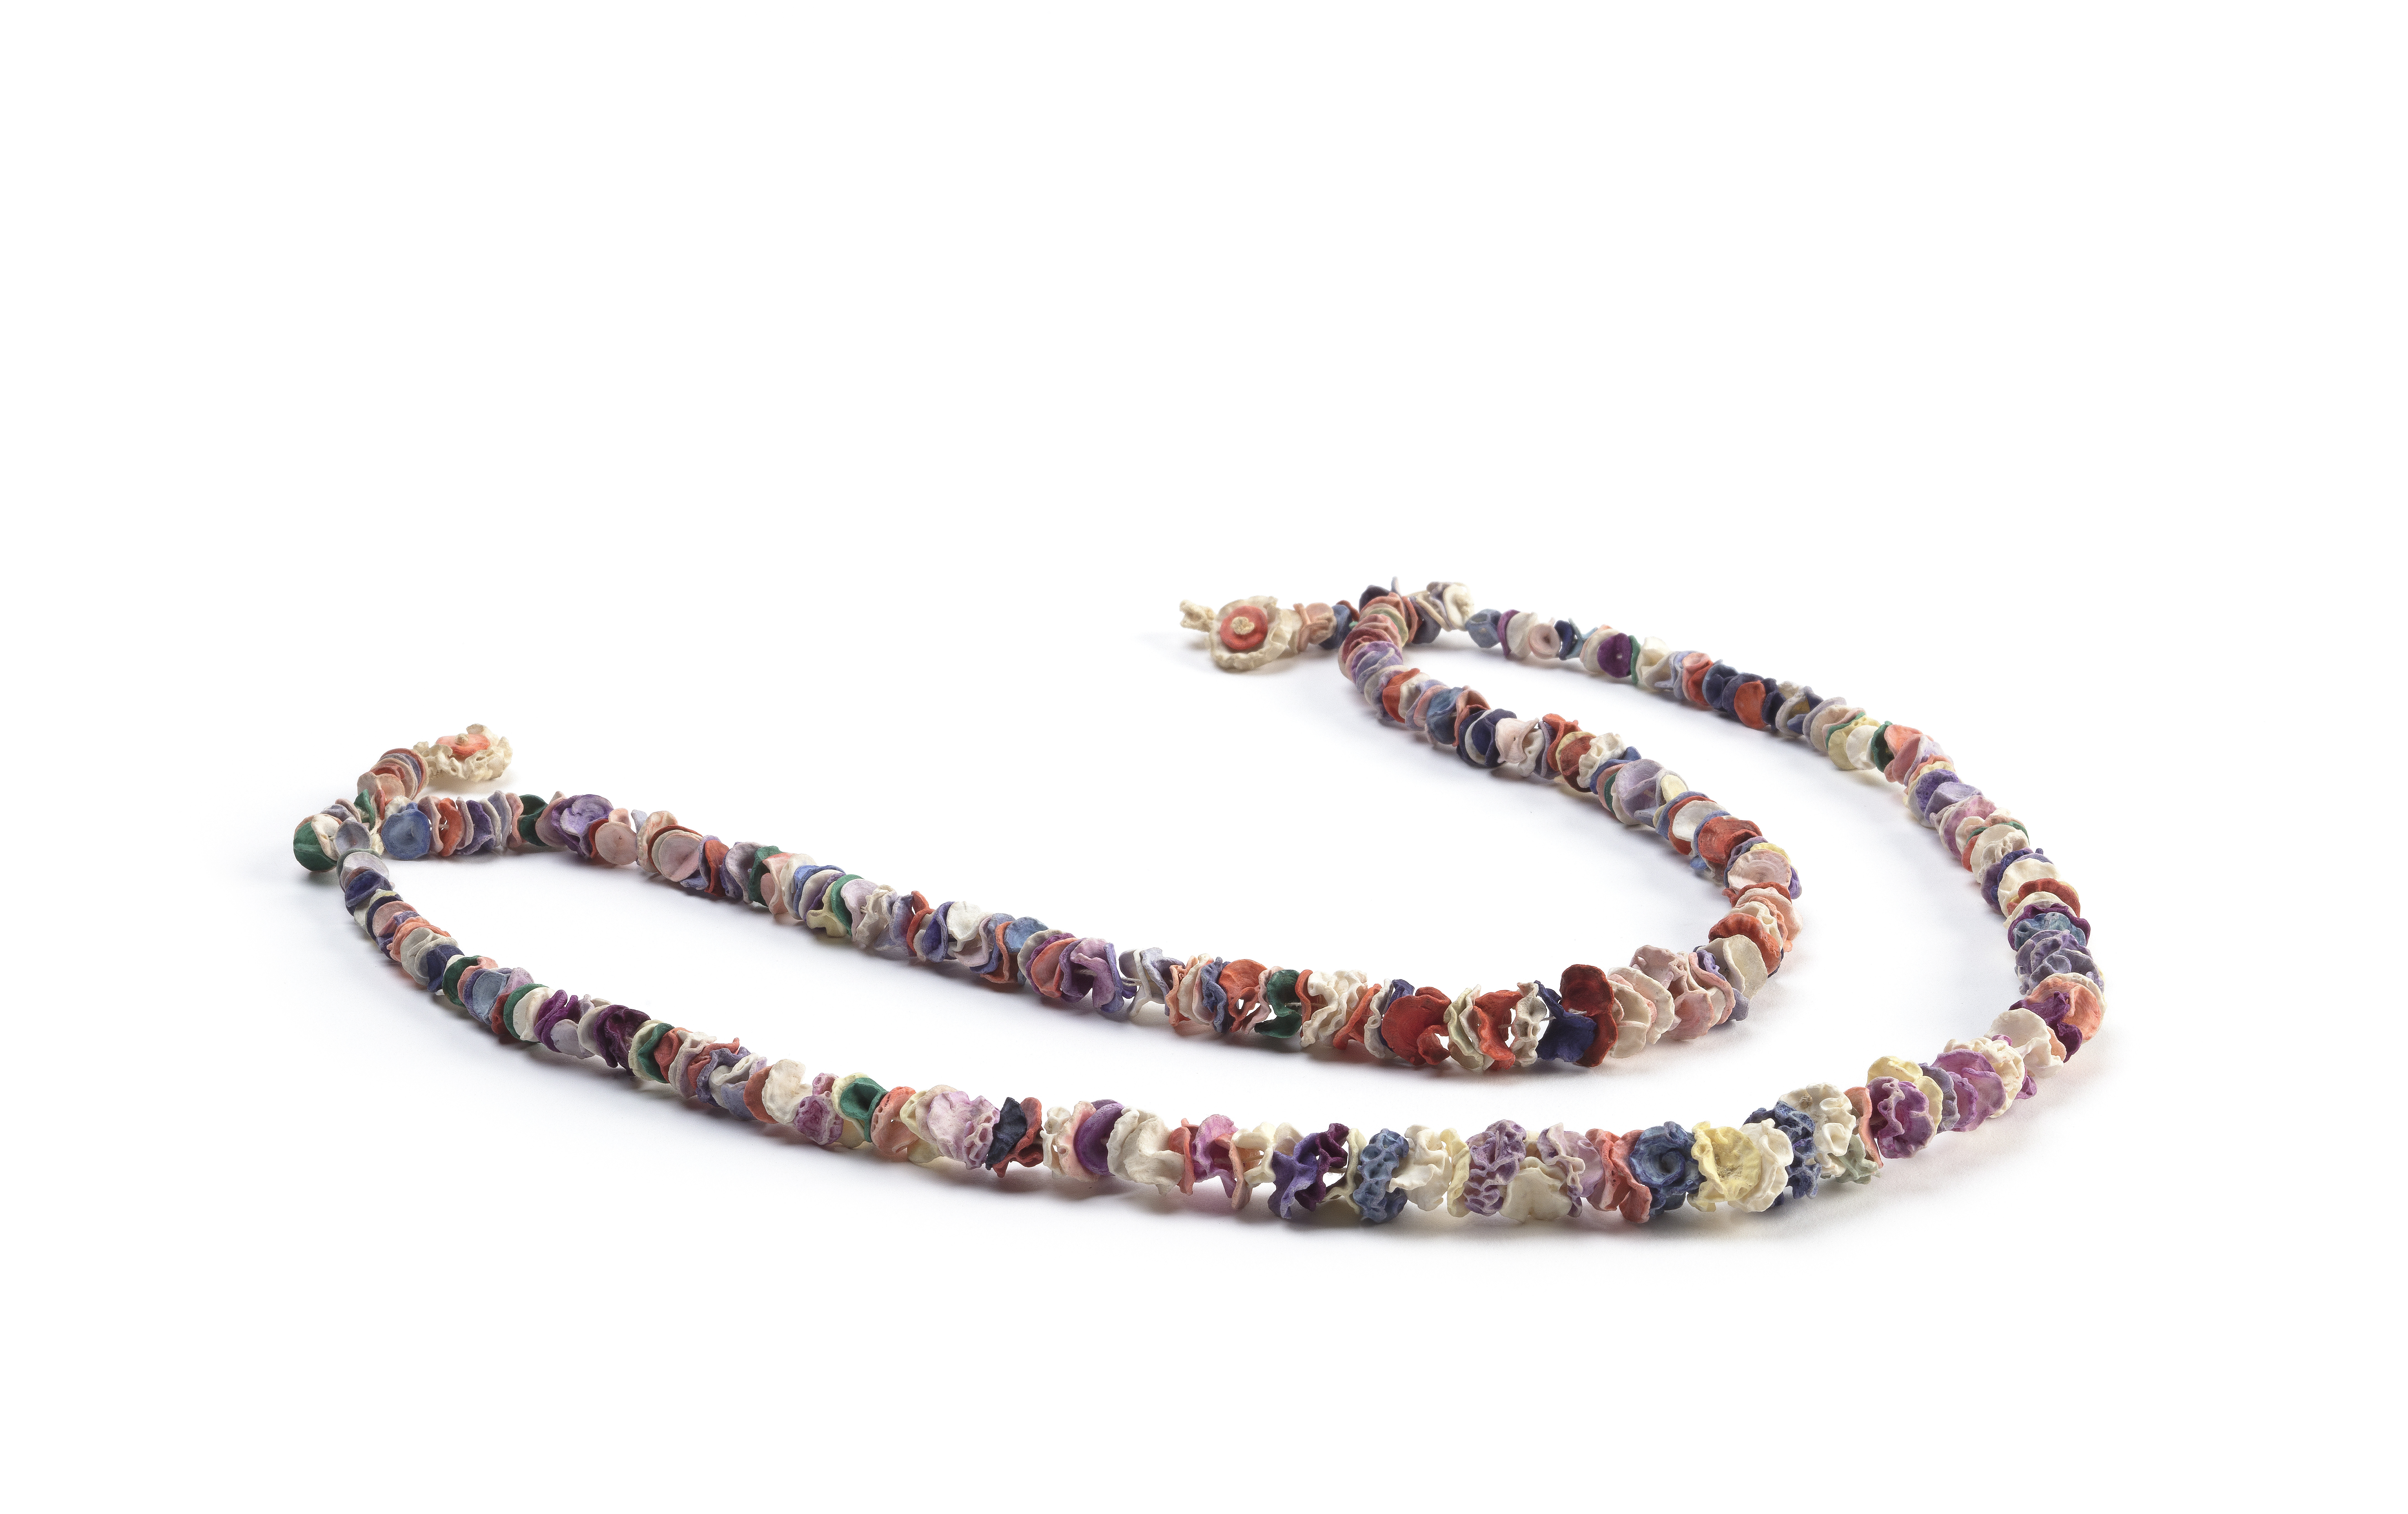 Shell necklace made for Marjorie Barnard by Jean Devanny, 1946